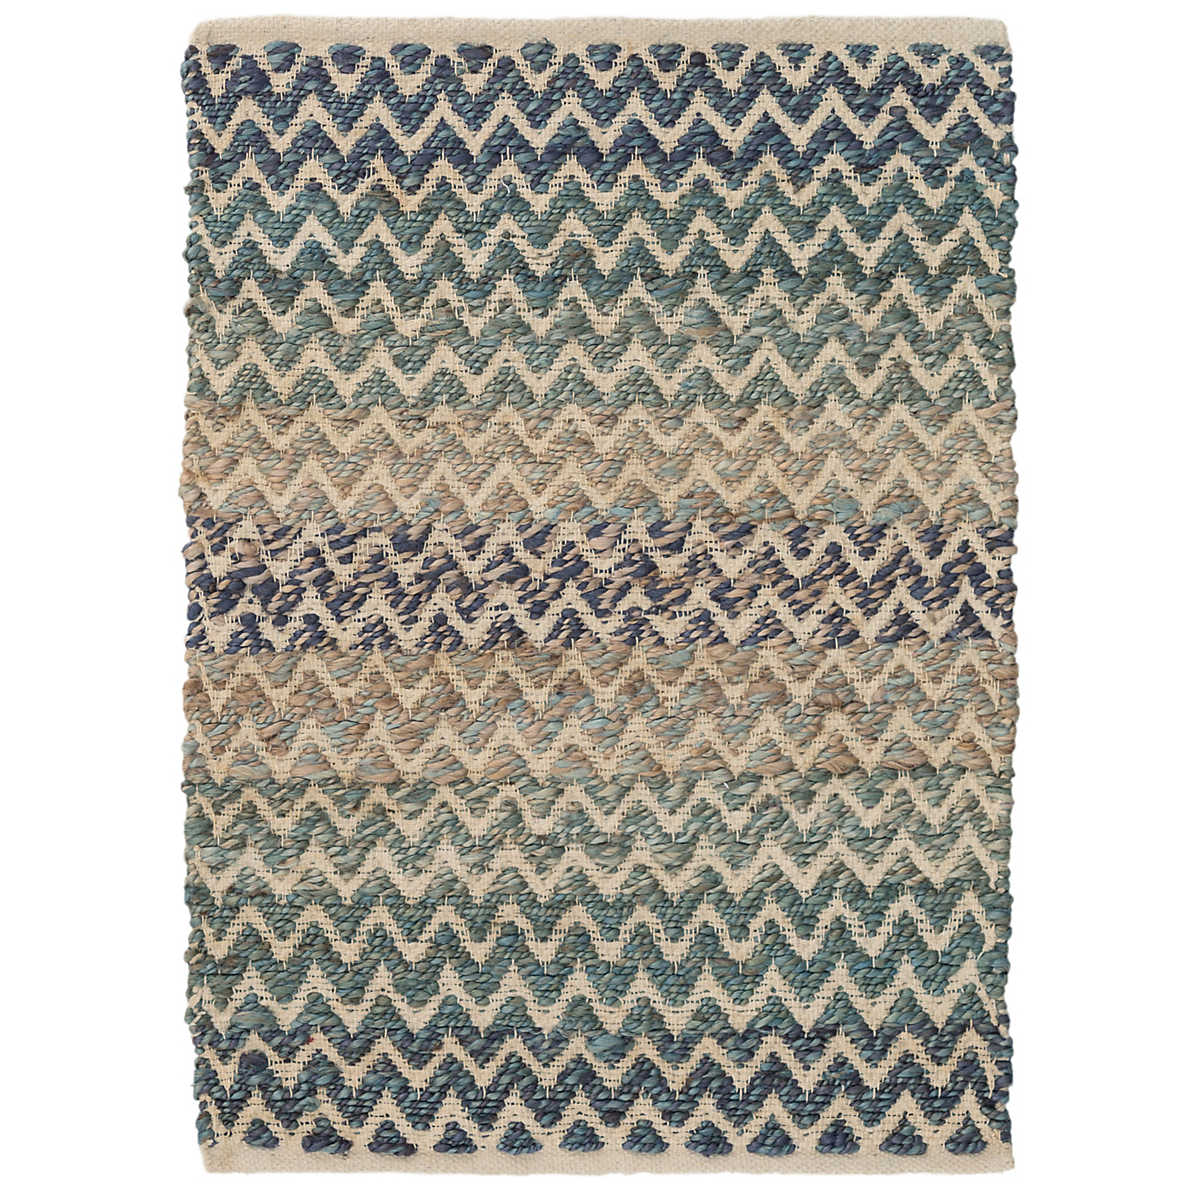 Woven Kitchen Rugs: Cousteau Jute Woven Rug